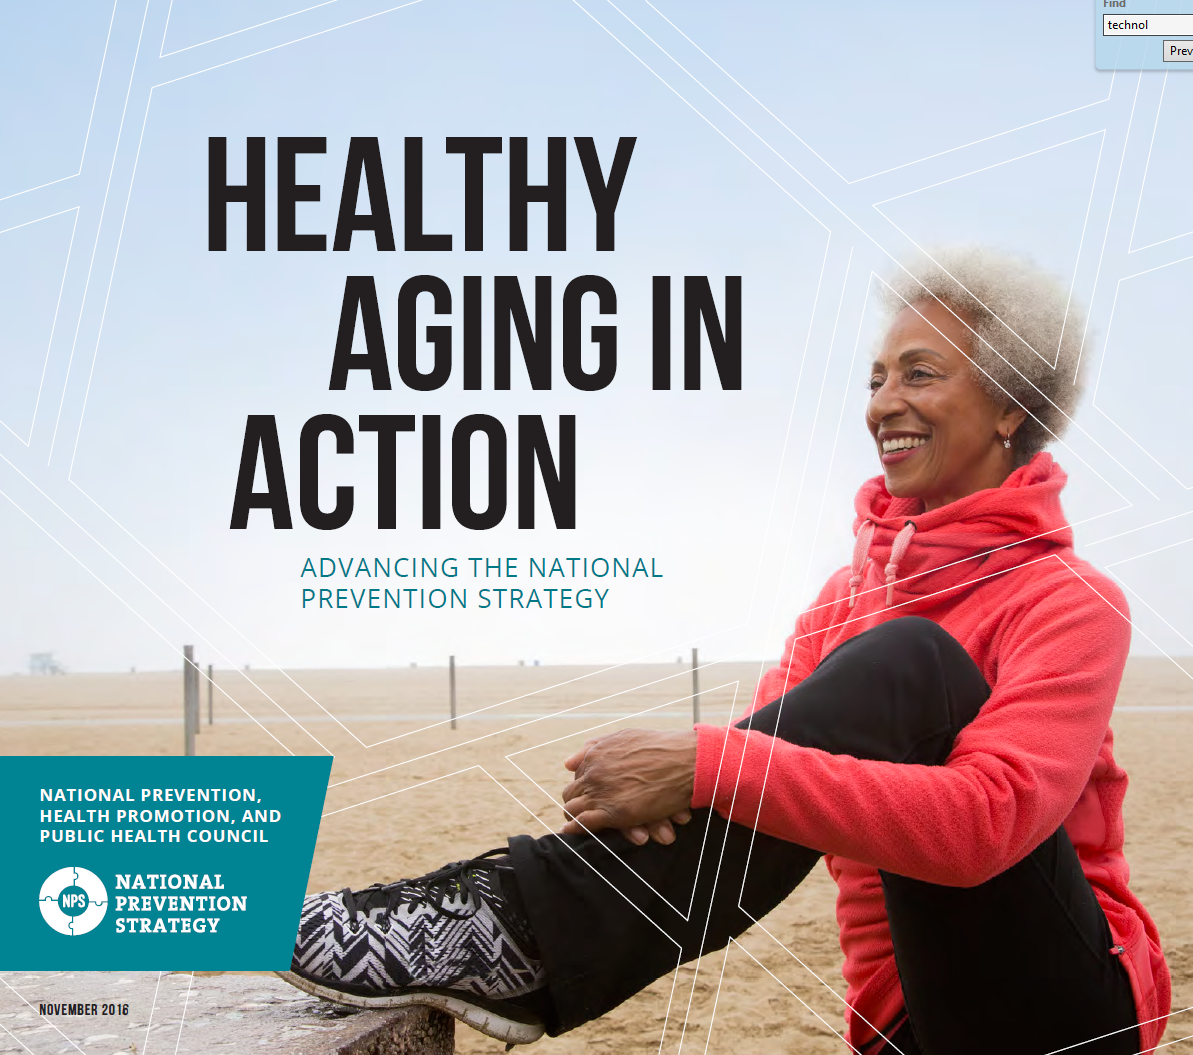 healthy aging in action  the surgeon general u2019s national